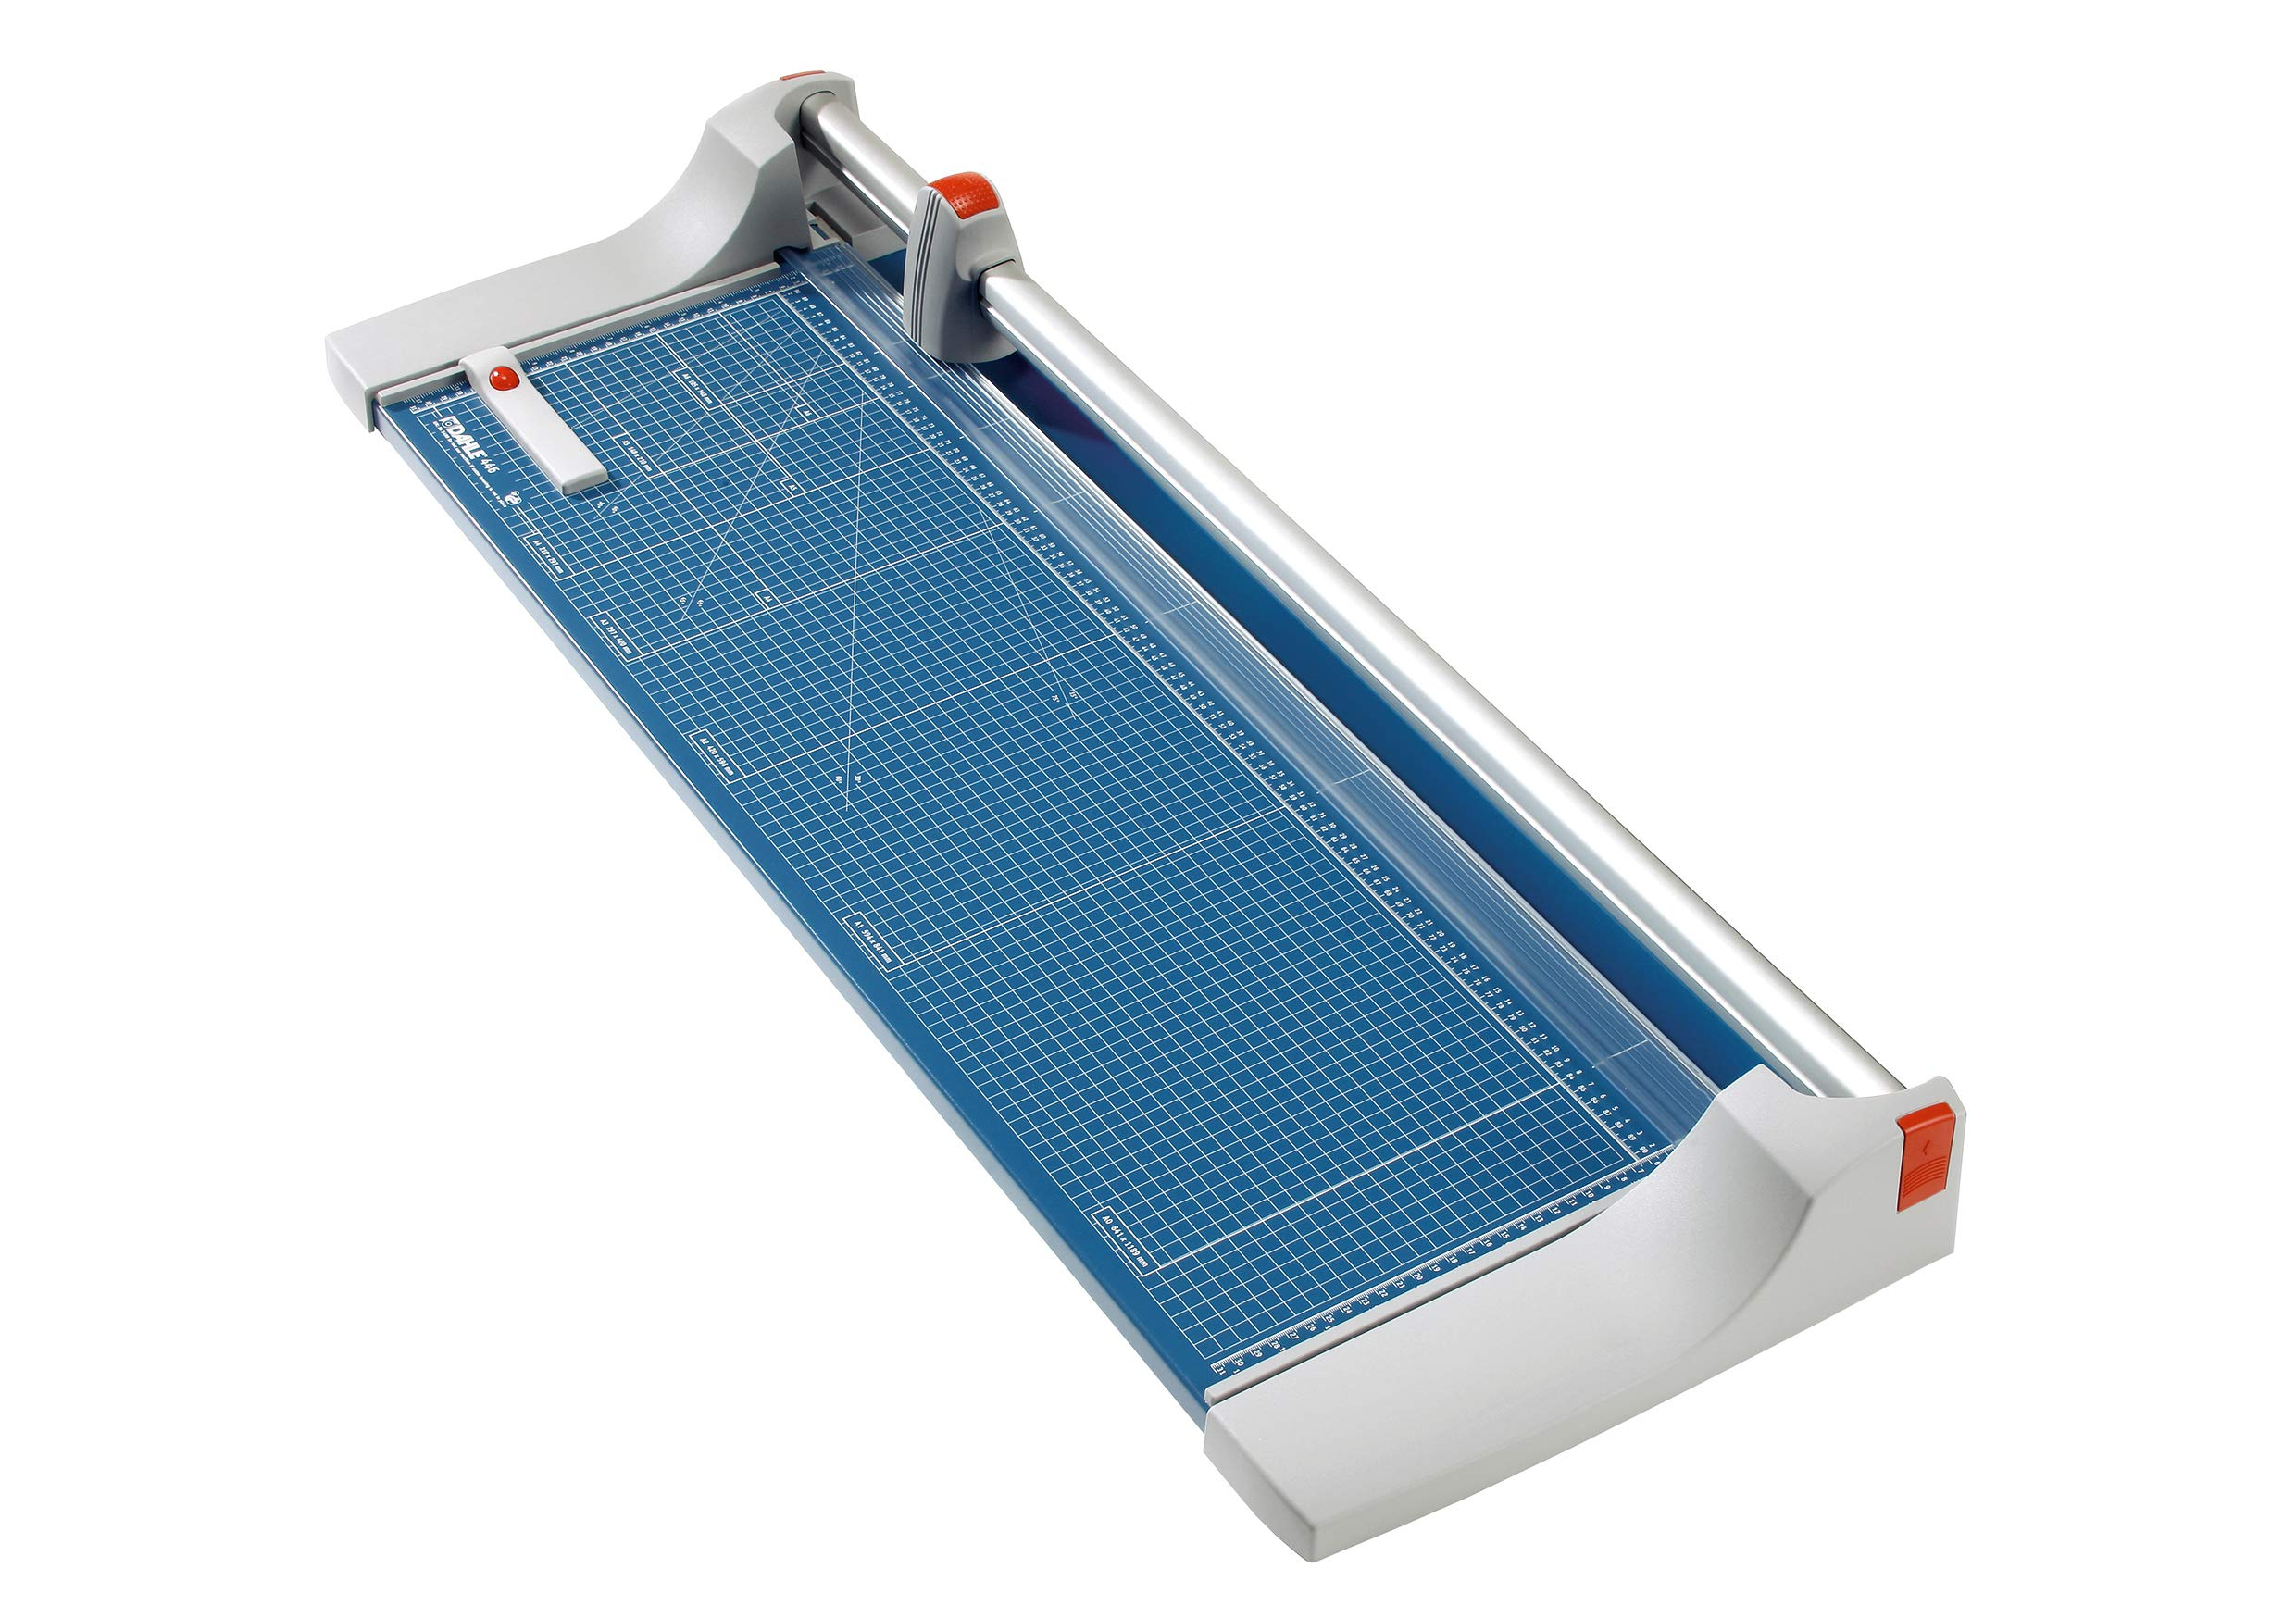 Dahle 446 Premium Rolling Trimmer, 36-1/8'' Cut Length, 25 Sheet Capacity, Self-Sharpening, Automatic Clamp, German Engineered Paper Cutter by Dahle